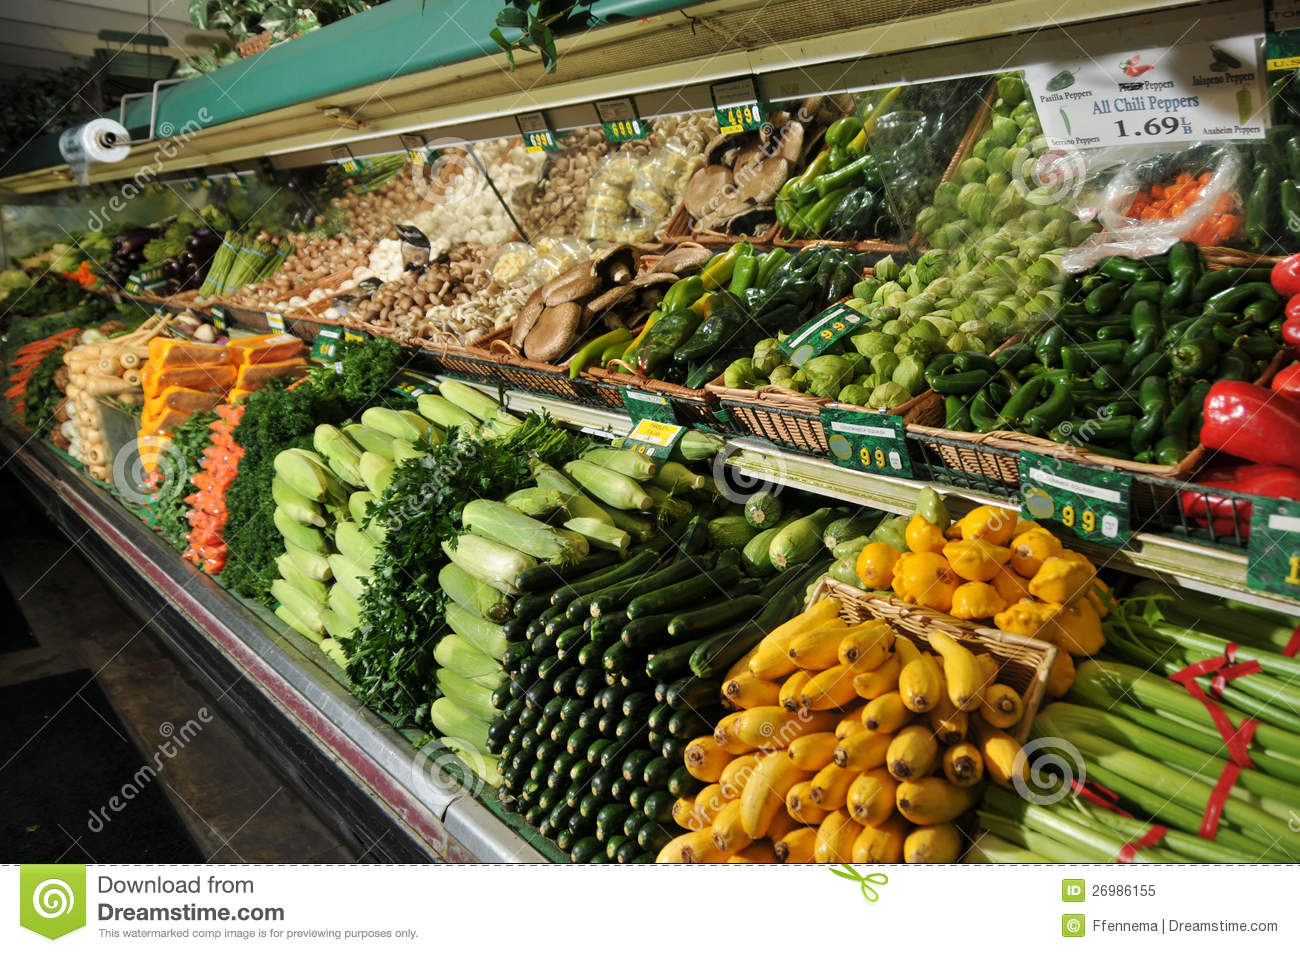 Grocery Store Produce Section Display Stock Image - Image ...